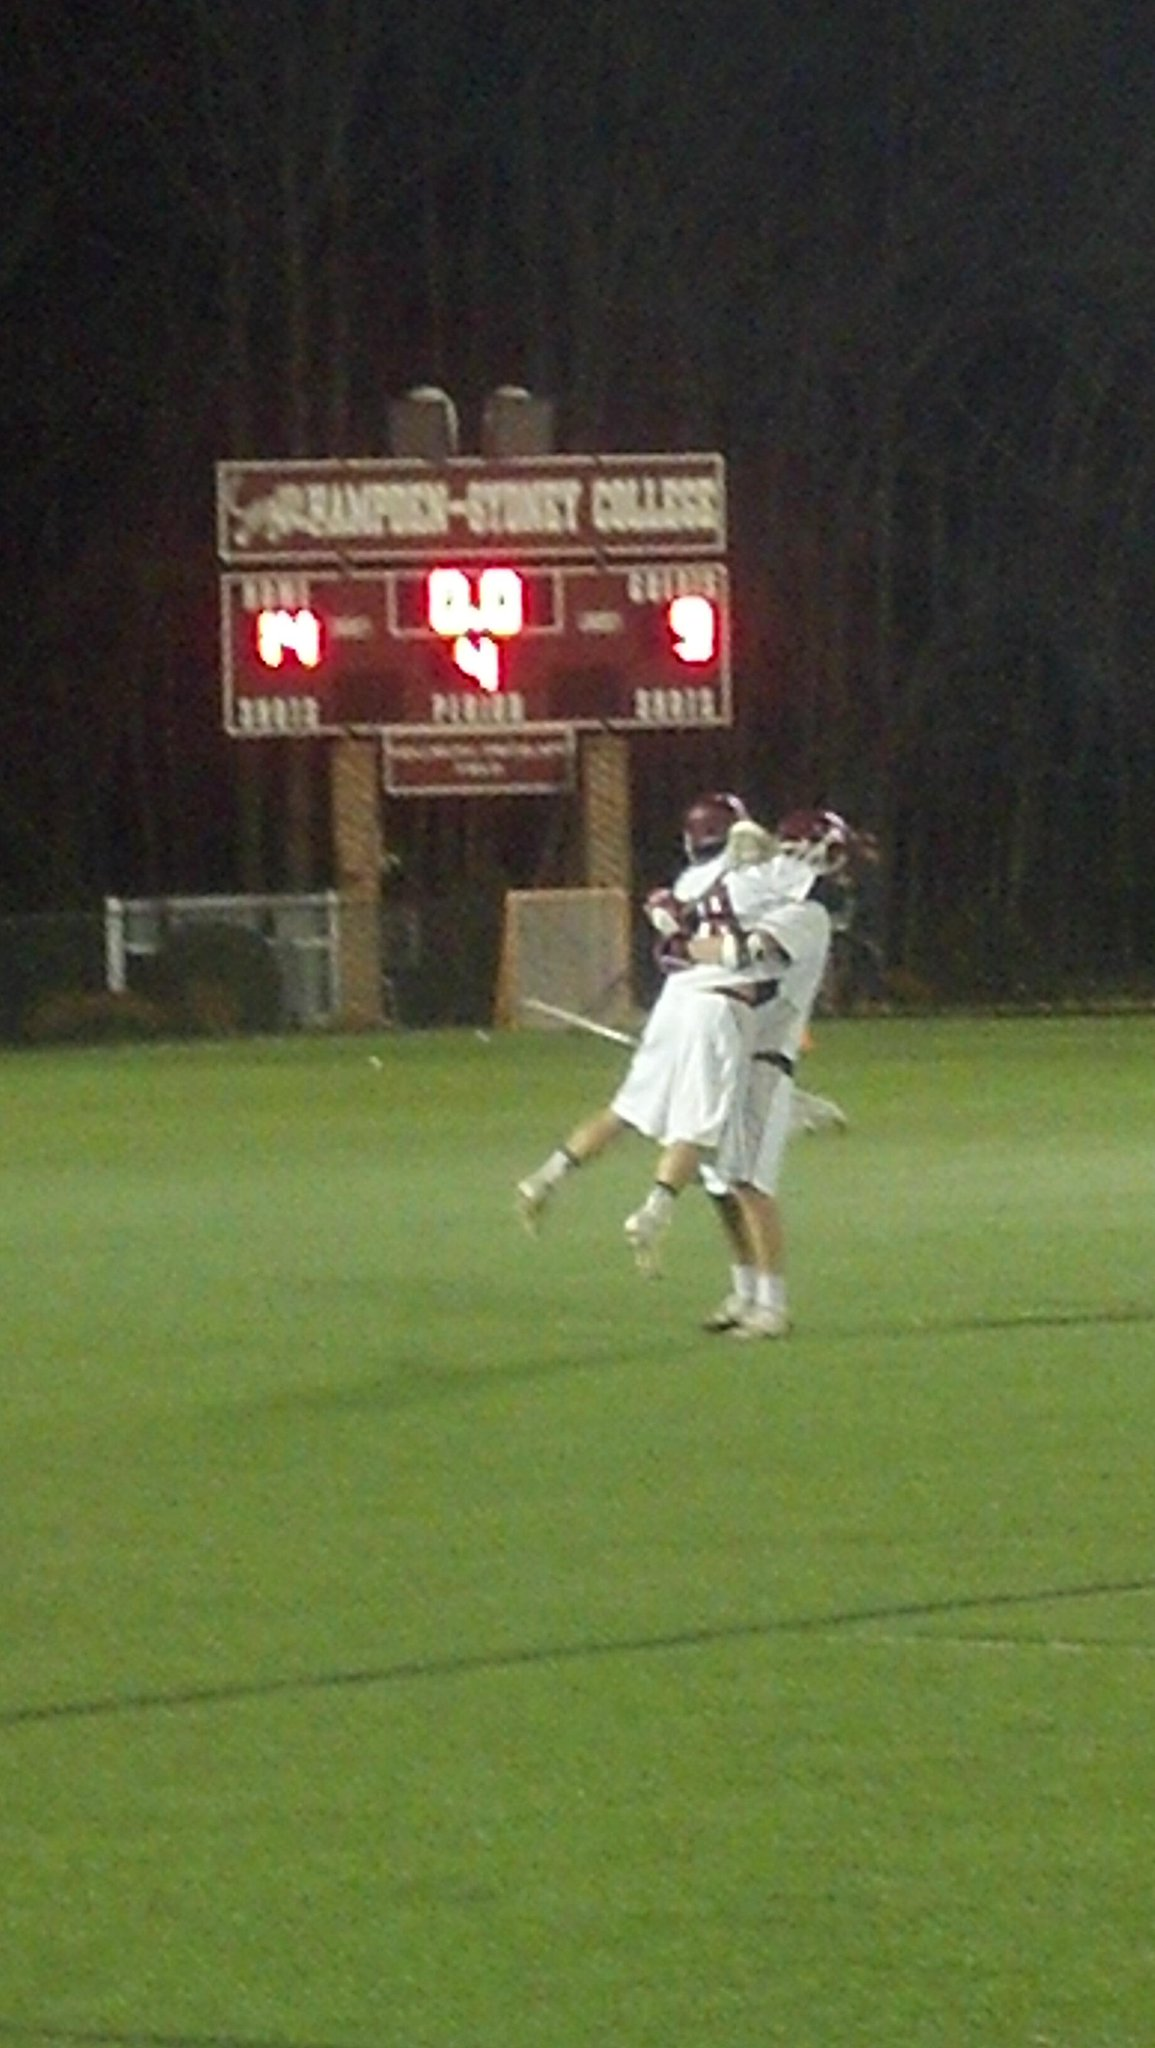 Twitter / HSC1776: Tigers beat Macon, 14-9 ...